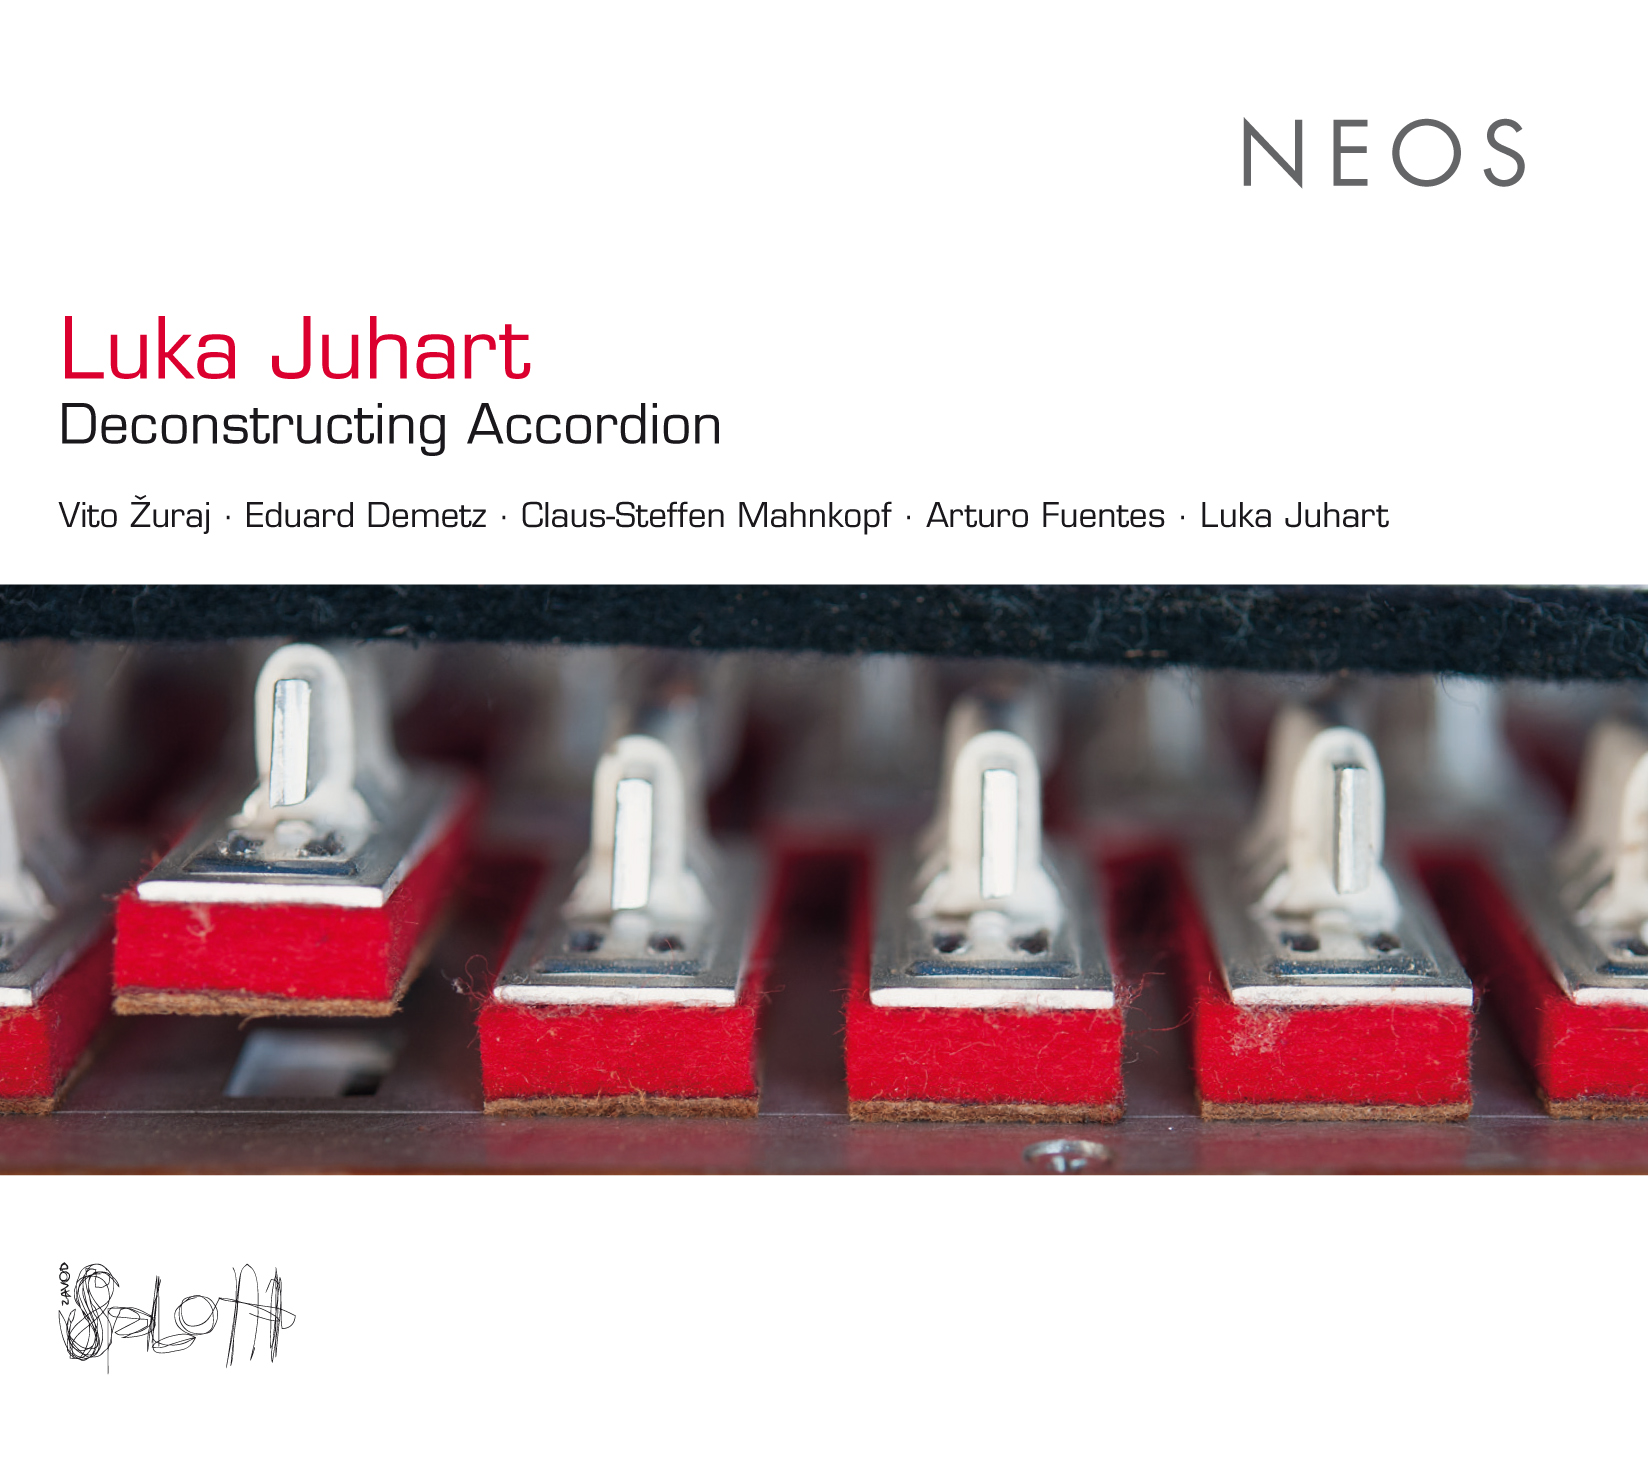 Luka Juhart - Deconstructing Accordion